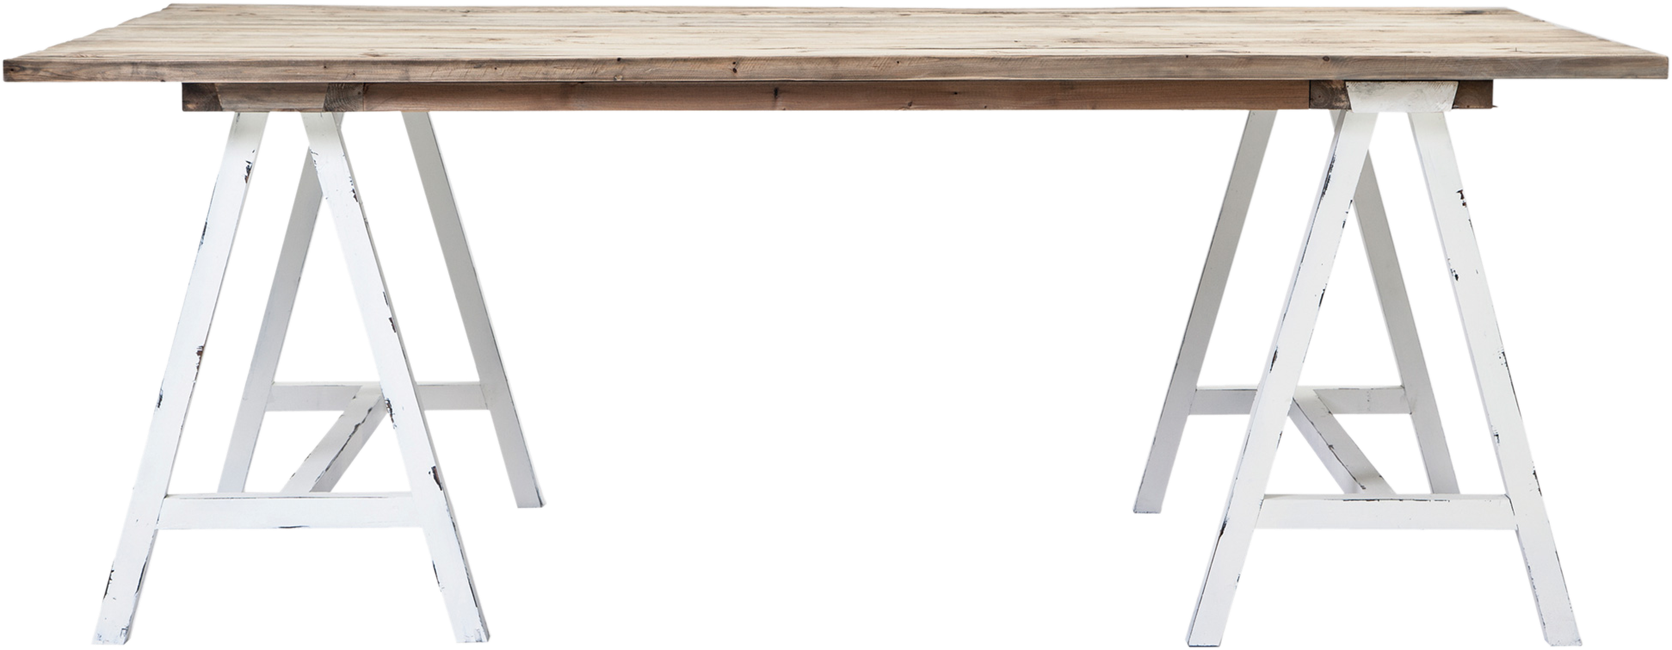 Driftwood Dining Table - 200 x 110cm Rect